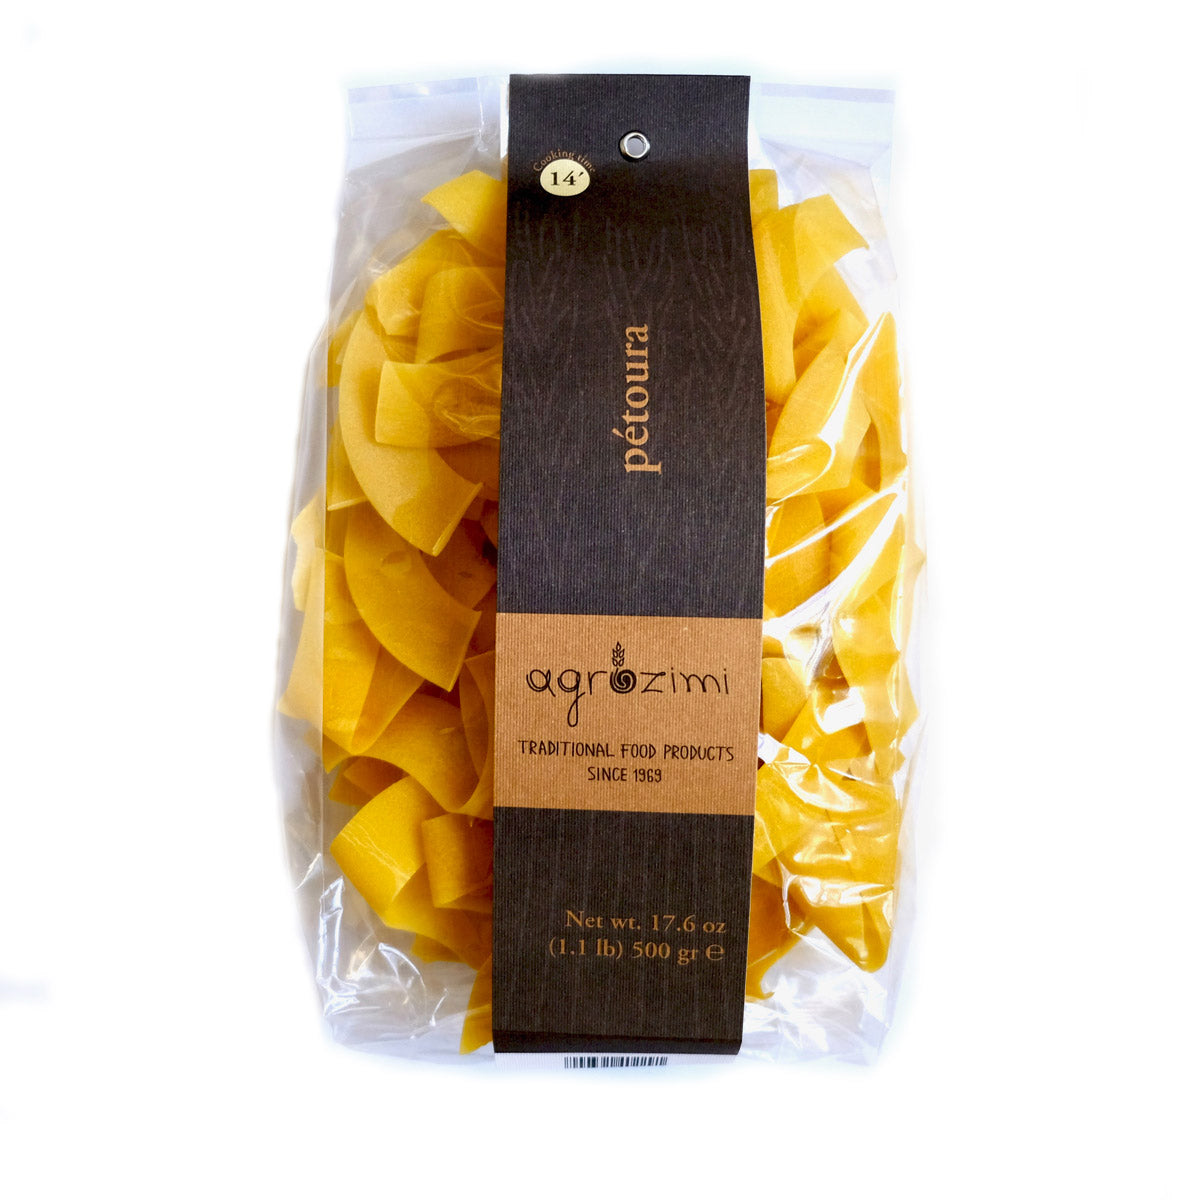 Agrozimi Egg & Milk Petoura All-natural Traditional Greek Pappardelle